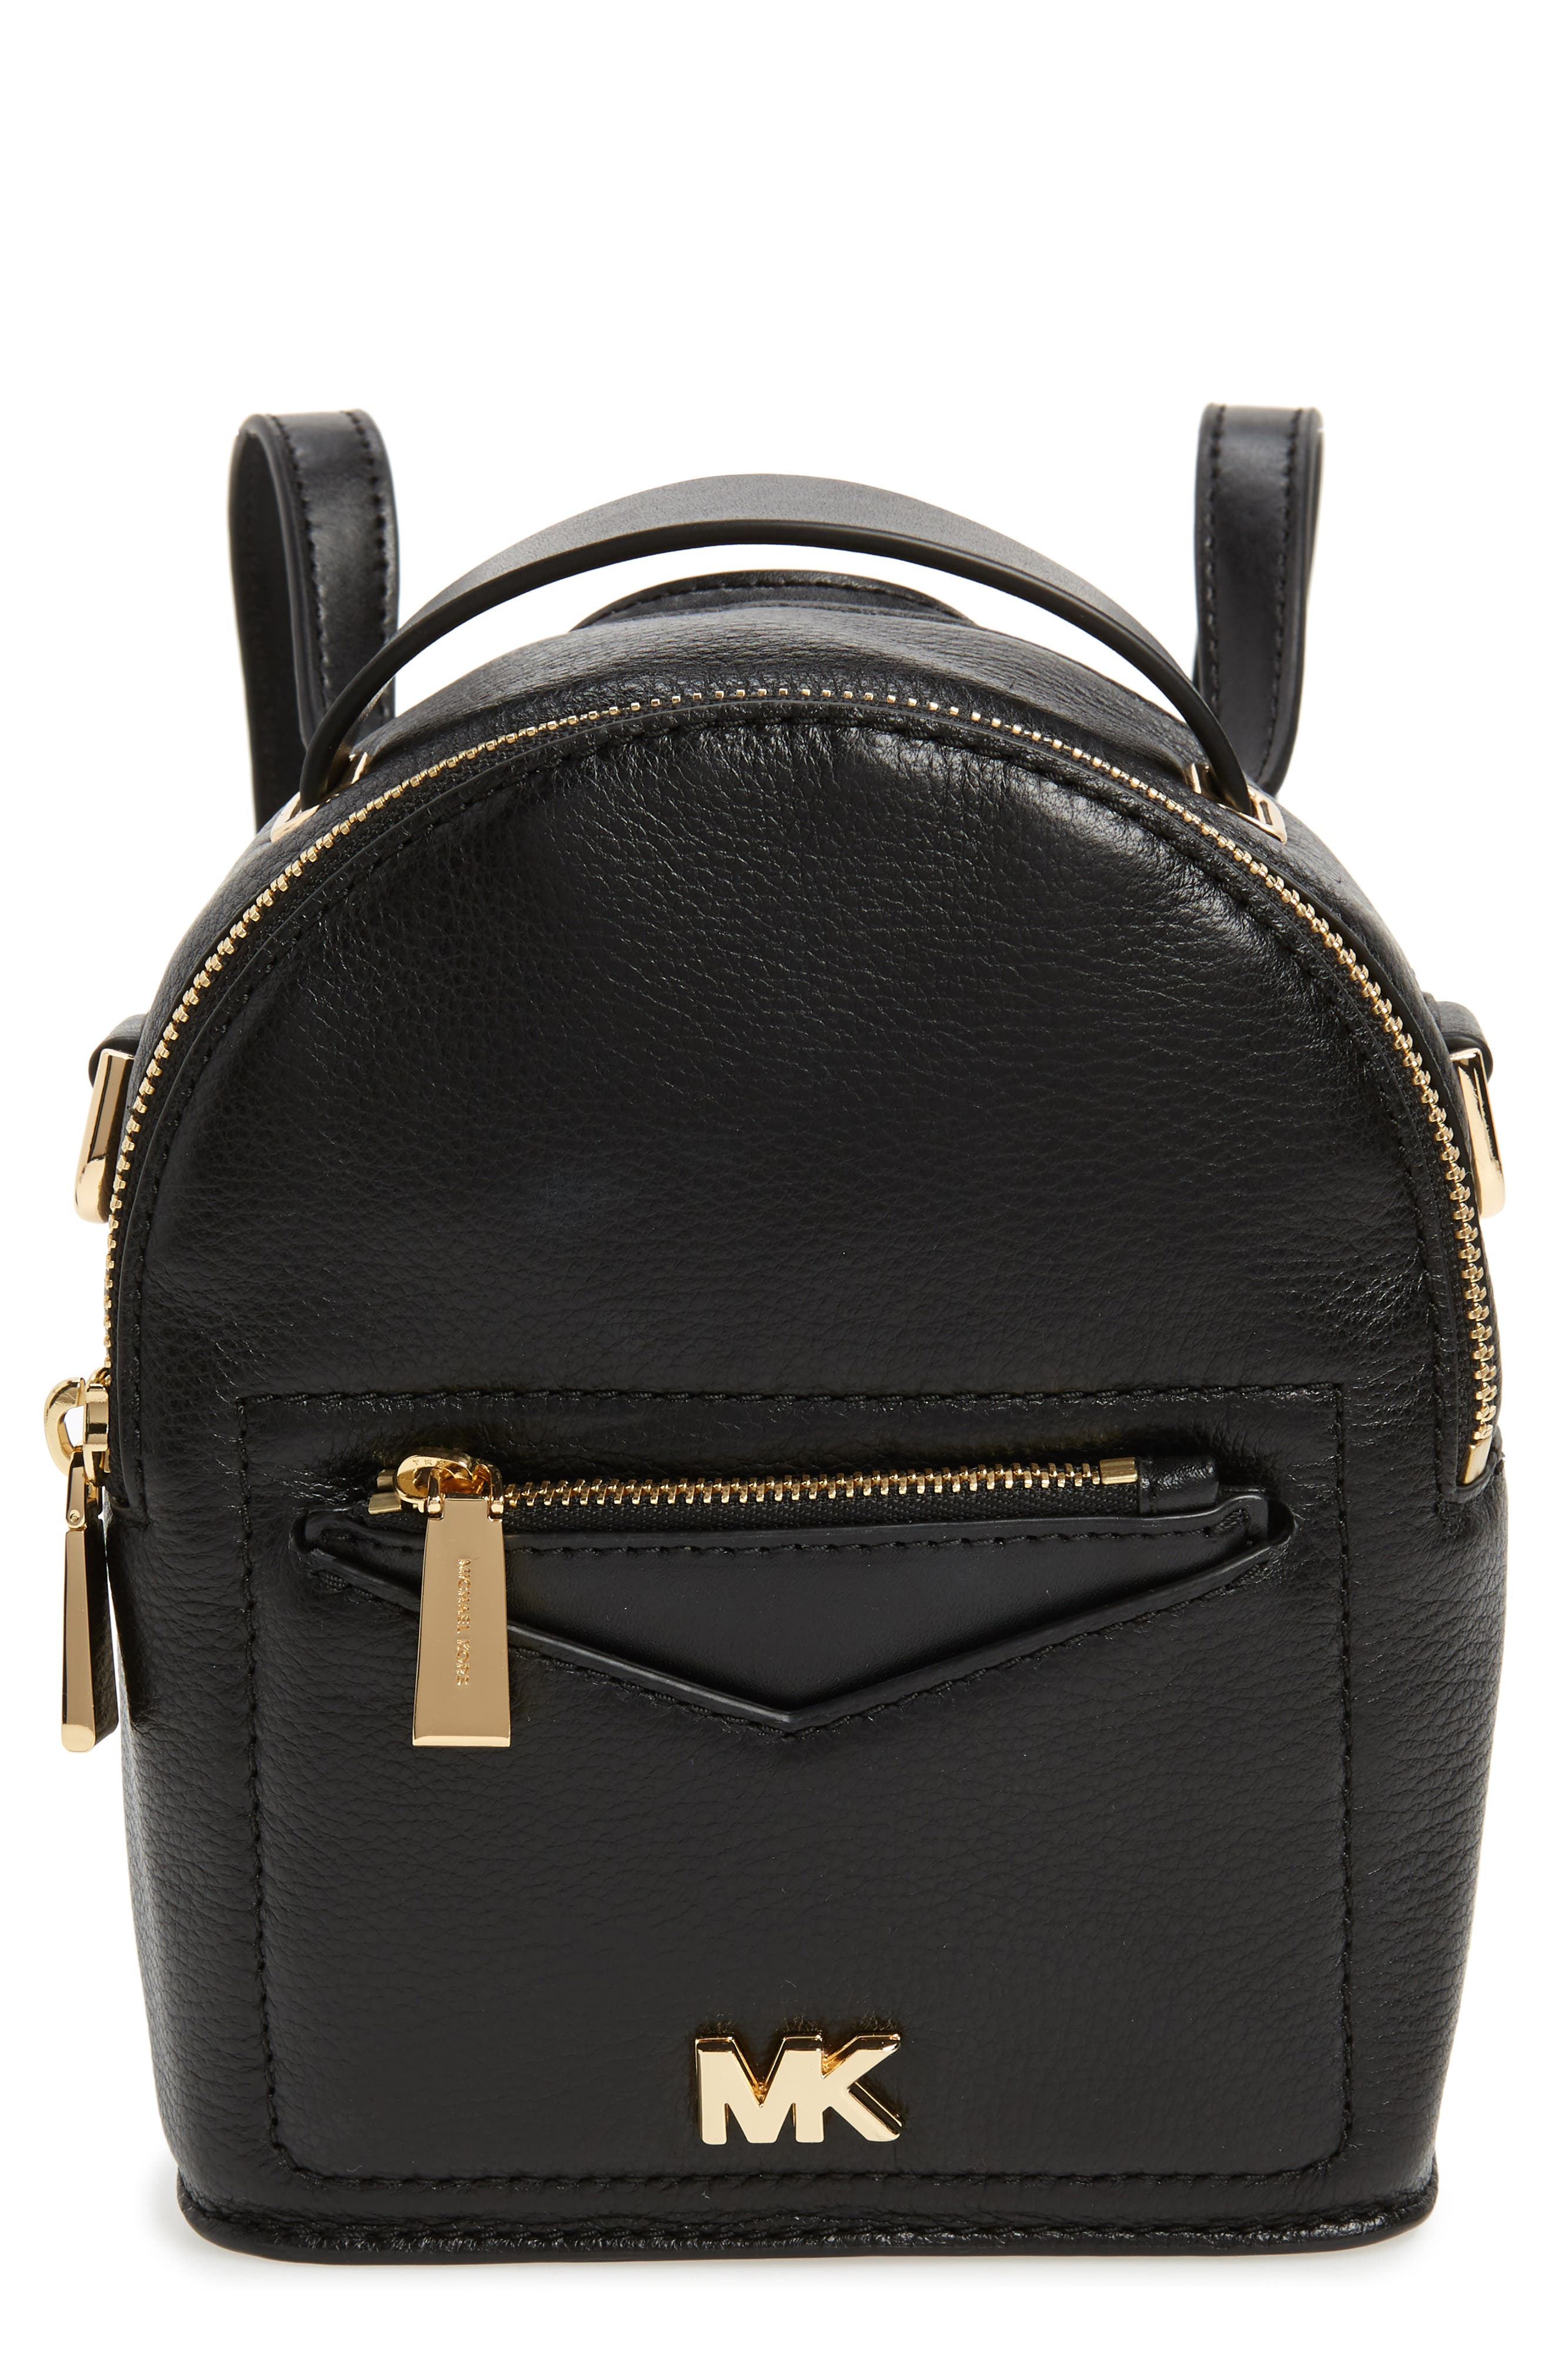 X-Small Convertible Leather Backpack,                             Main thumbnail 1, color,                             001